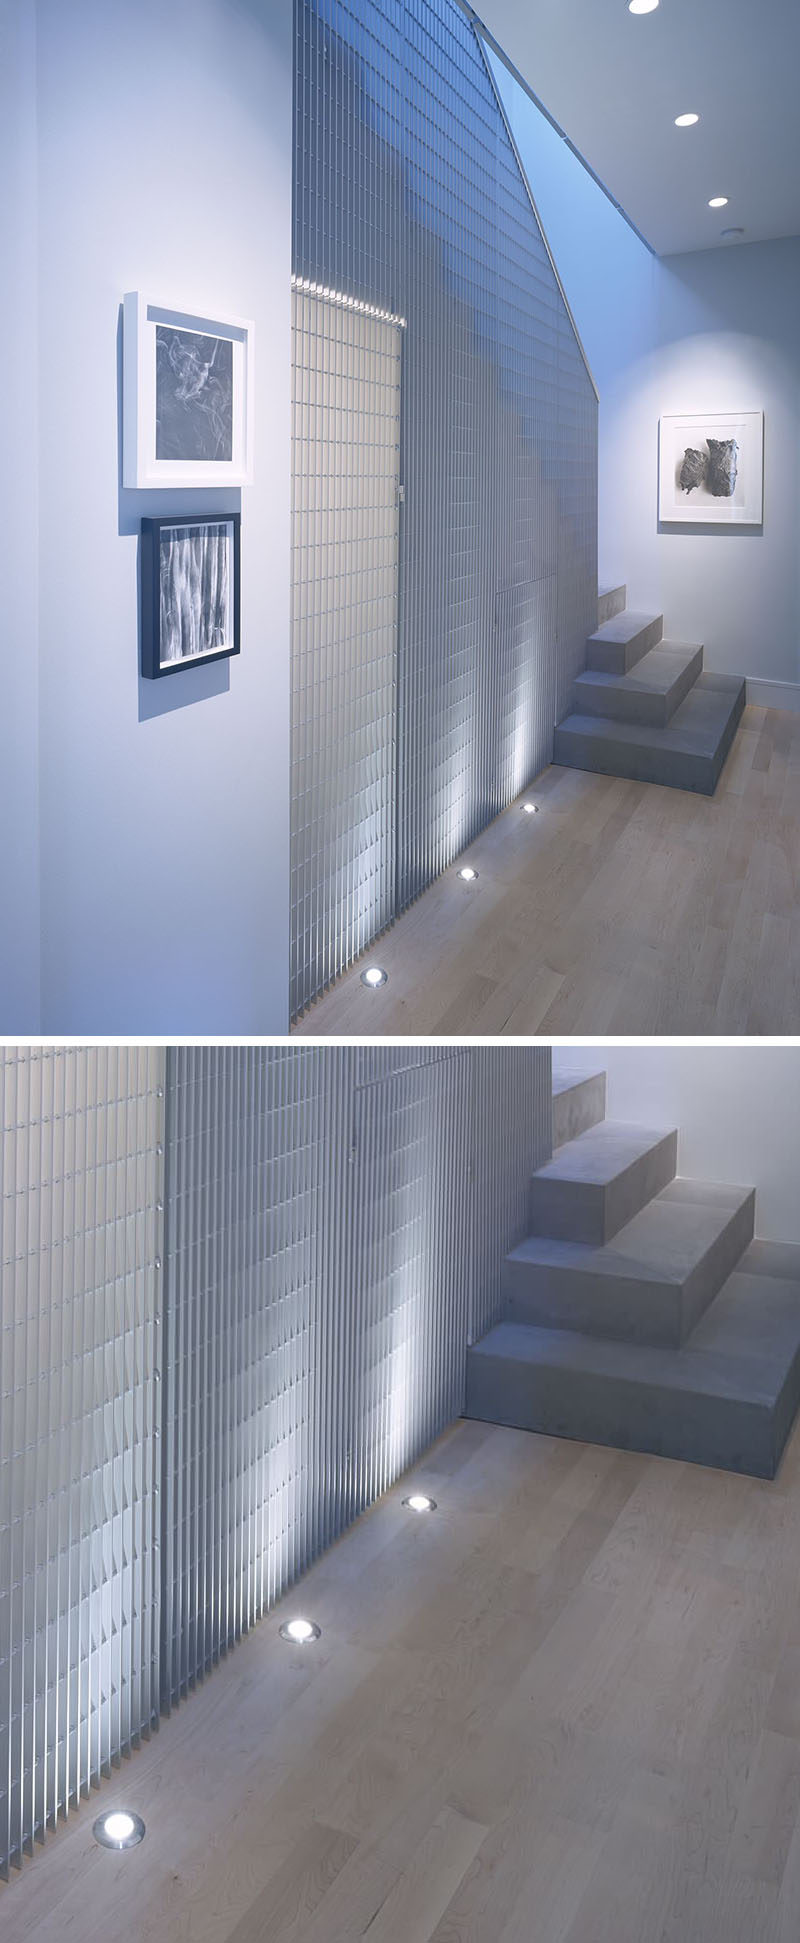 info for 353f3 51a12 7 Interiors That Use Dramatic Uplighting To Brighten A Space